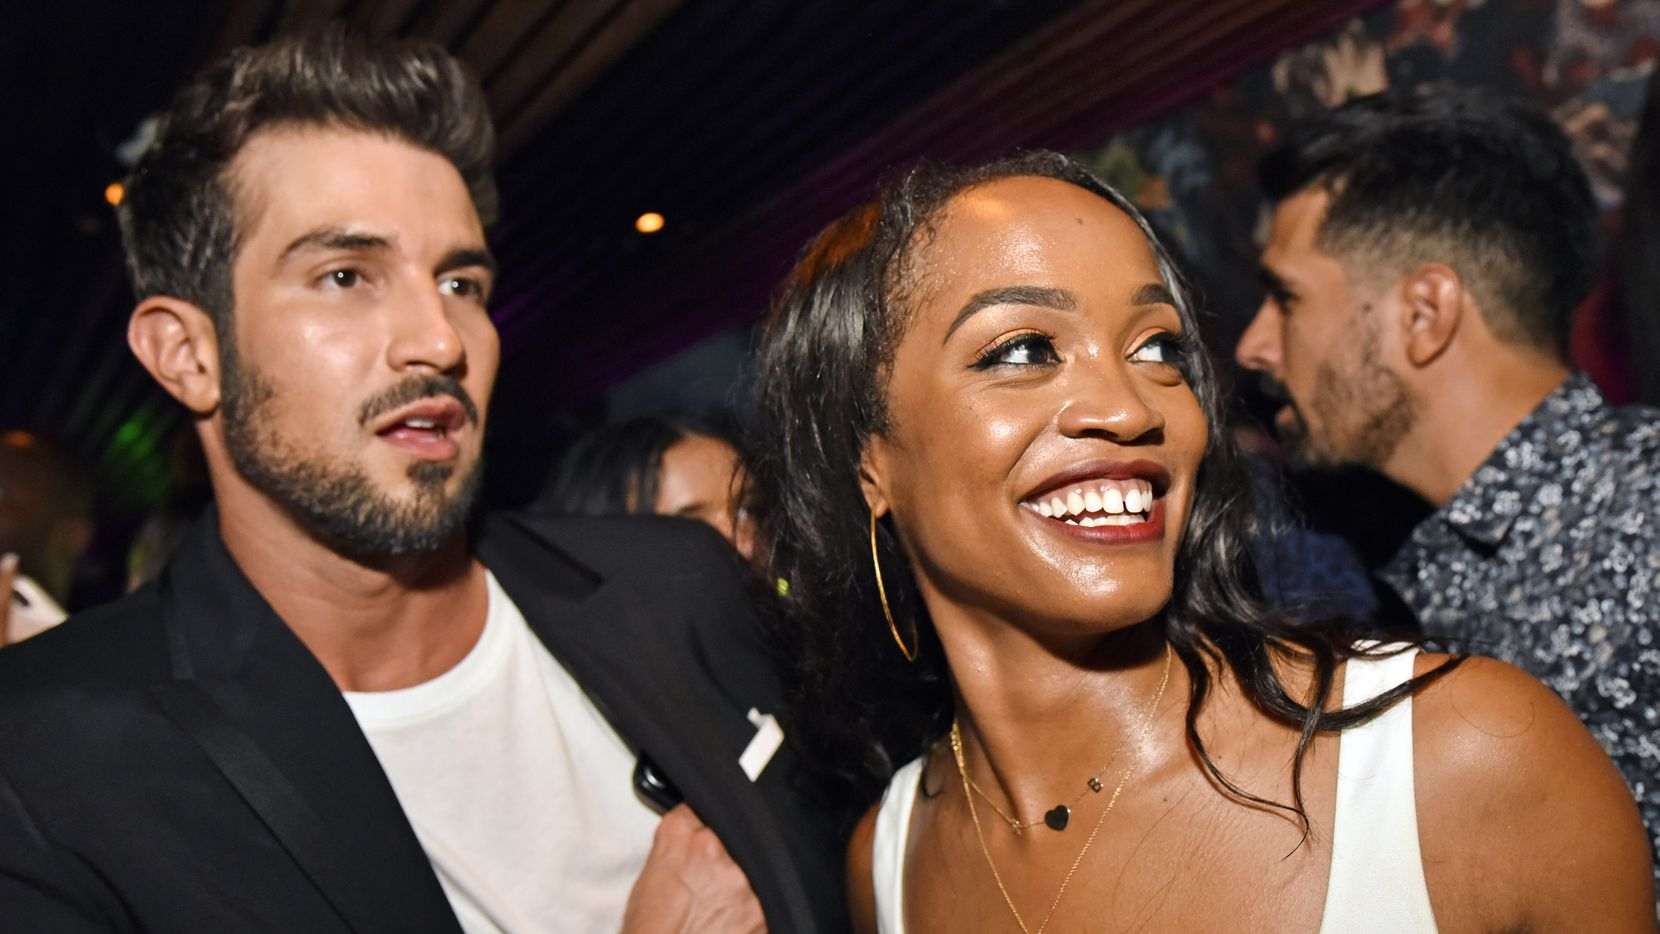 Rachel Lindsay and her husband, Bryan Abasolo, shown at the restaurant Nikkei in Uptown Dallas in 2017.